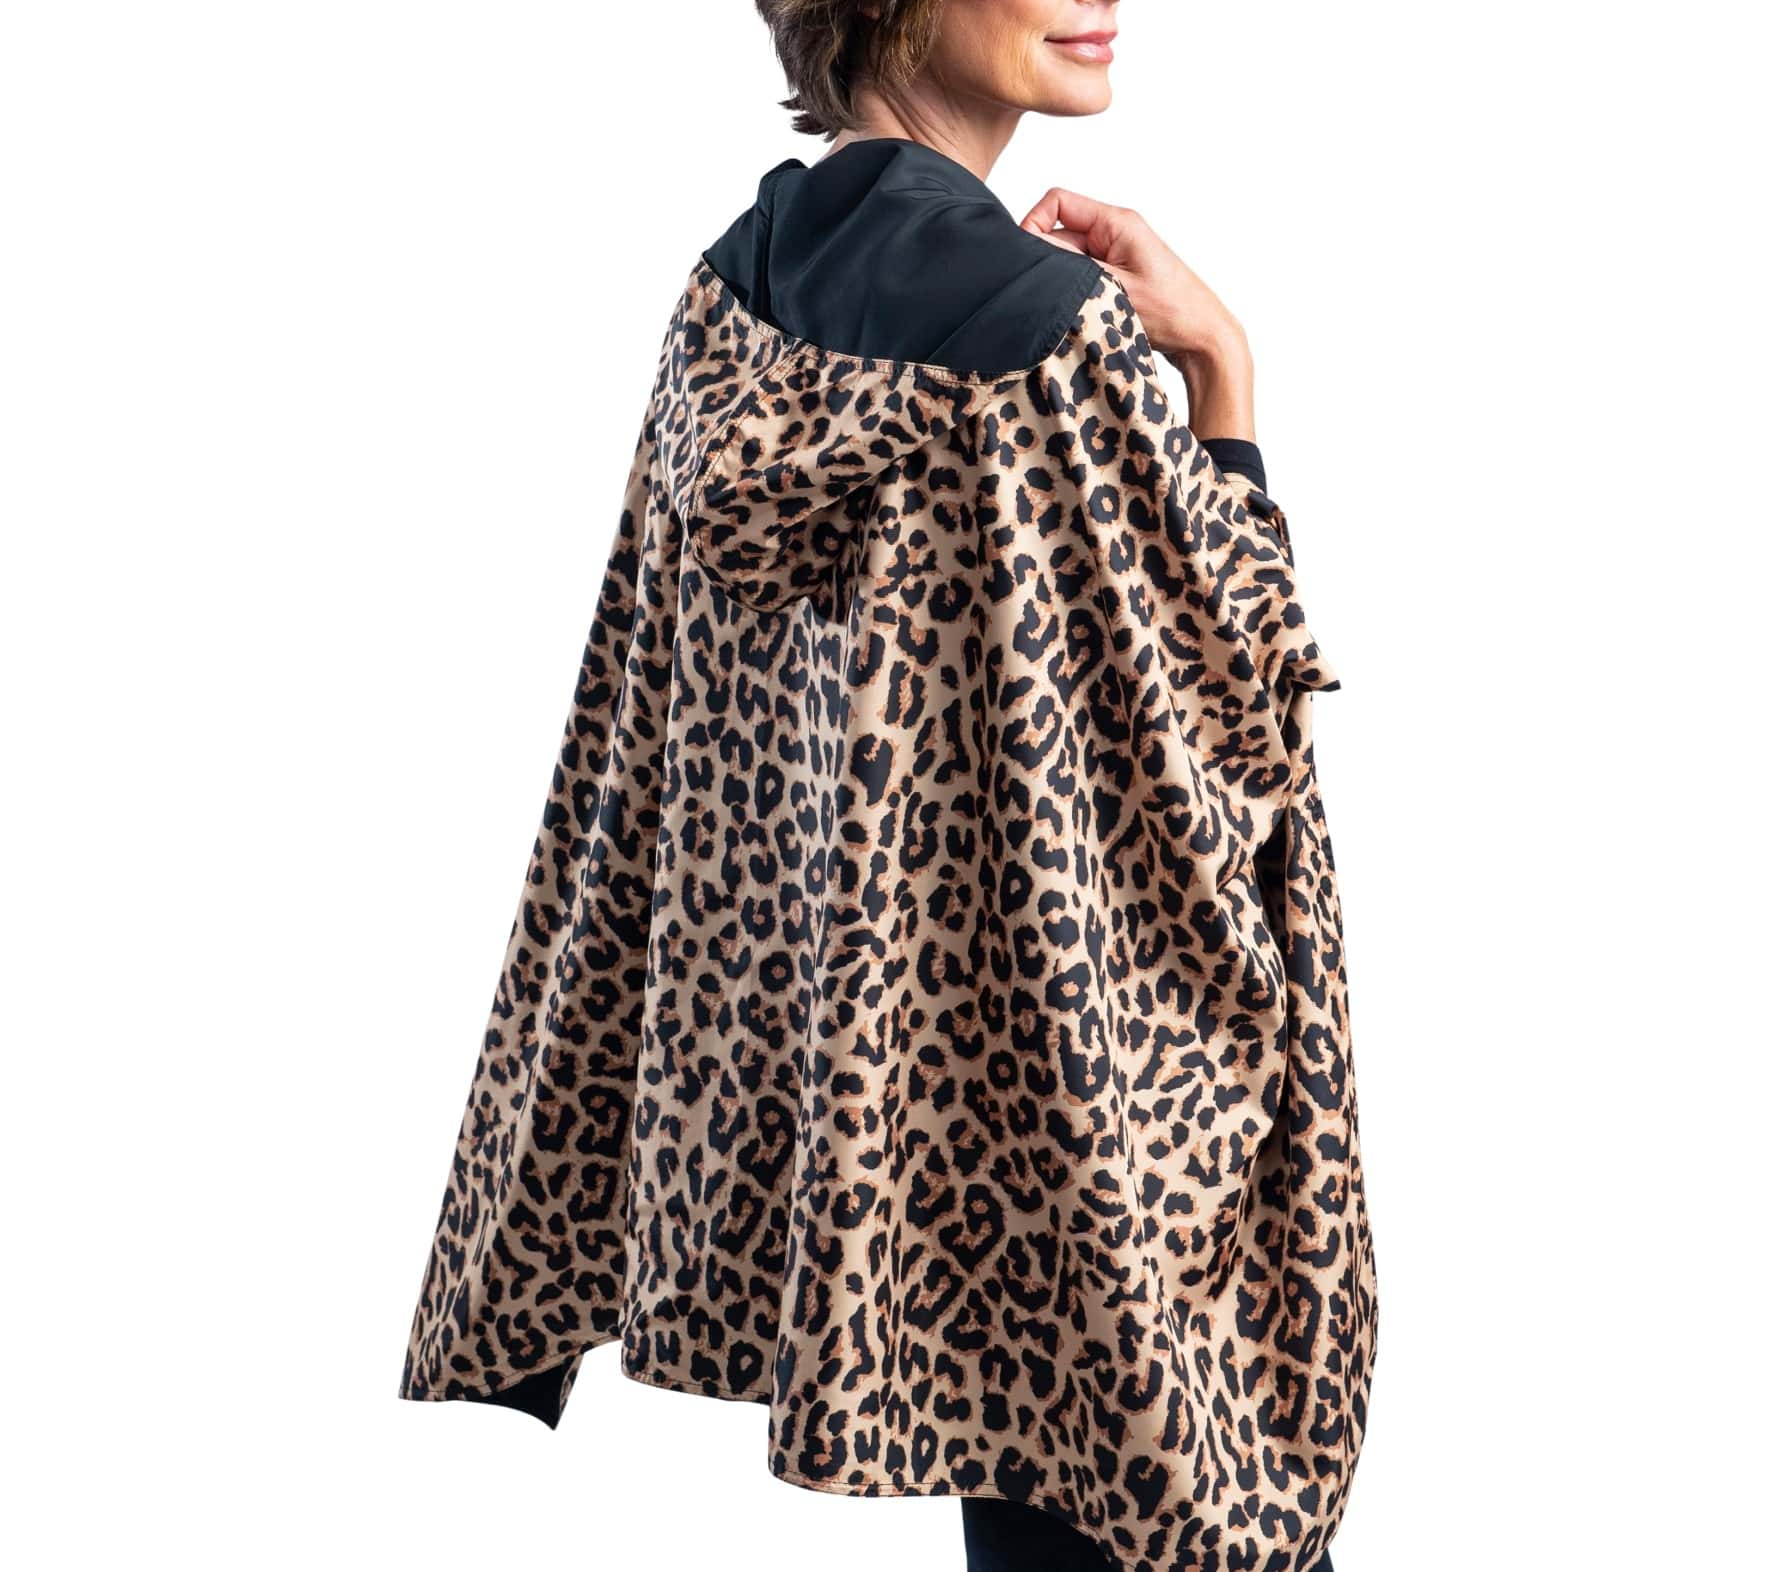 Women wearing a Black and Leopard Animal Print RainCaper travel cape with the Aqua side out, revealing the Leopard Animal print at the lapels and cuffs